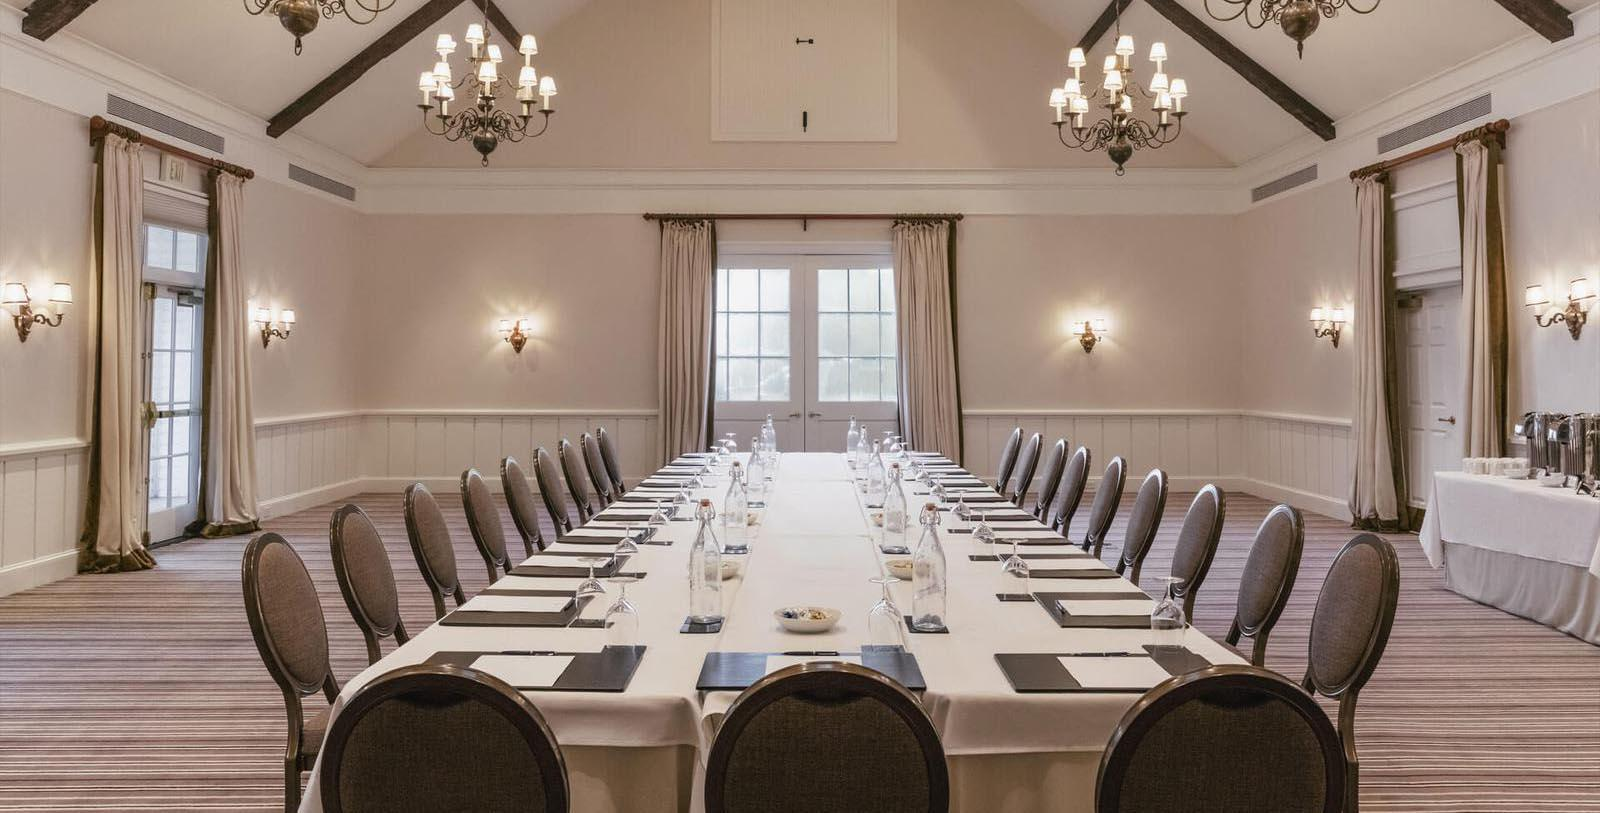 Image of Meeting Room, Inn at Perry Cabin in St. Michaels, Maryland, 1816, Member of Historic Hotels of America, Special Occasions